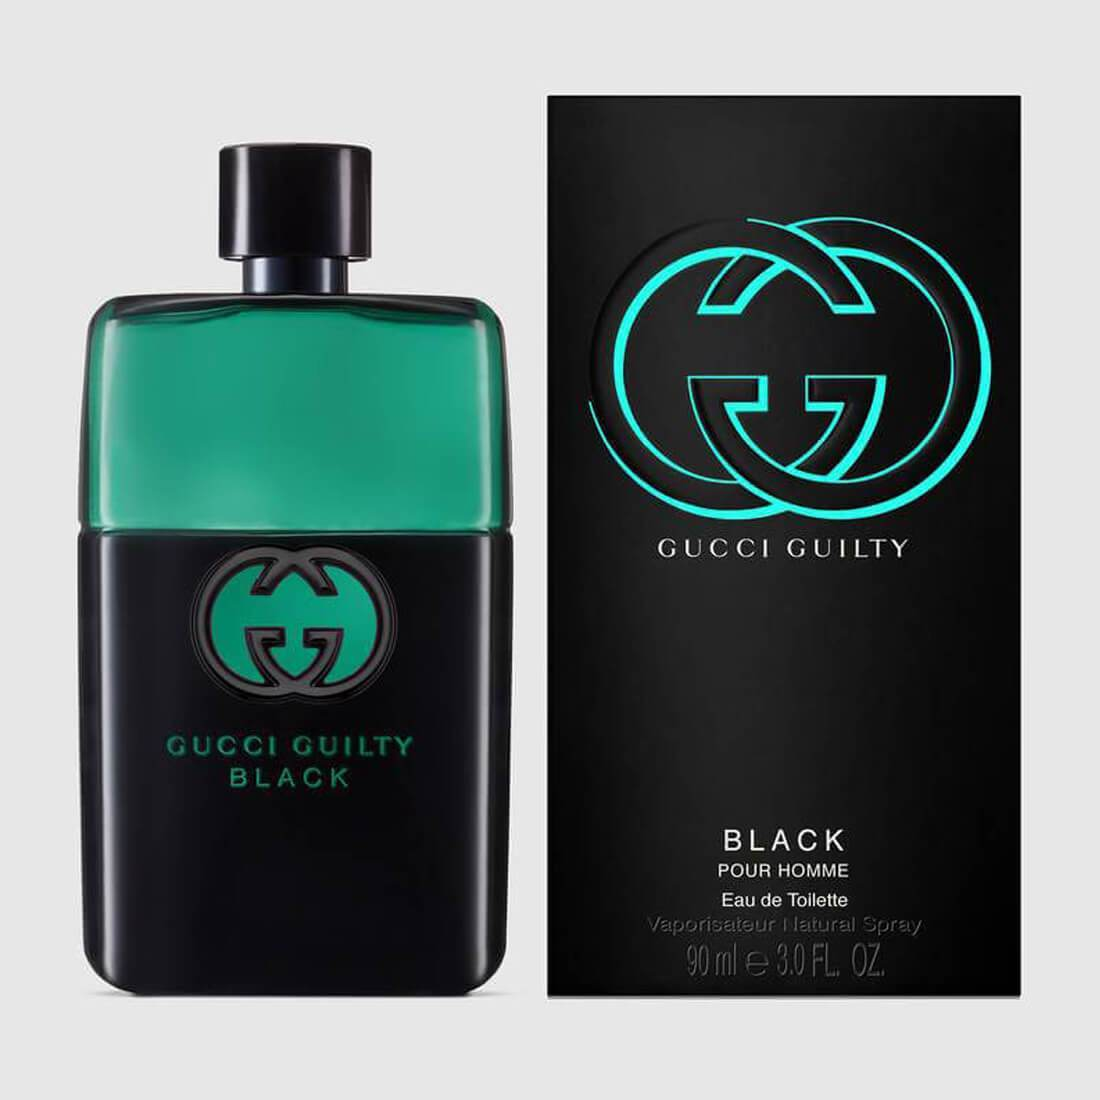 Gucci Guilty Black Pour Homme Perfume For Men - 90ml